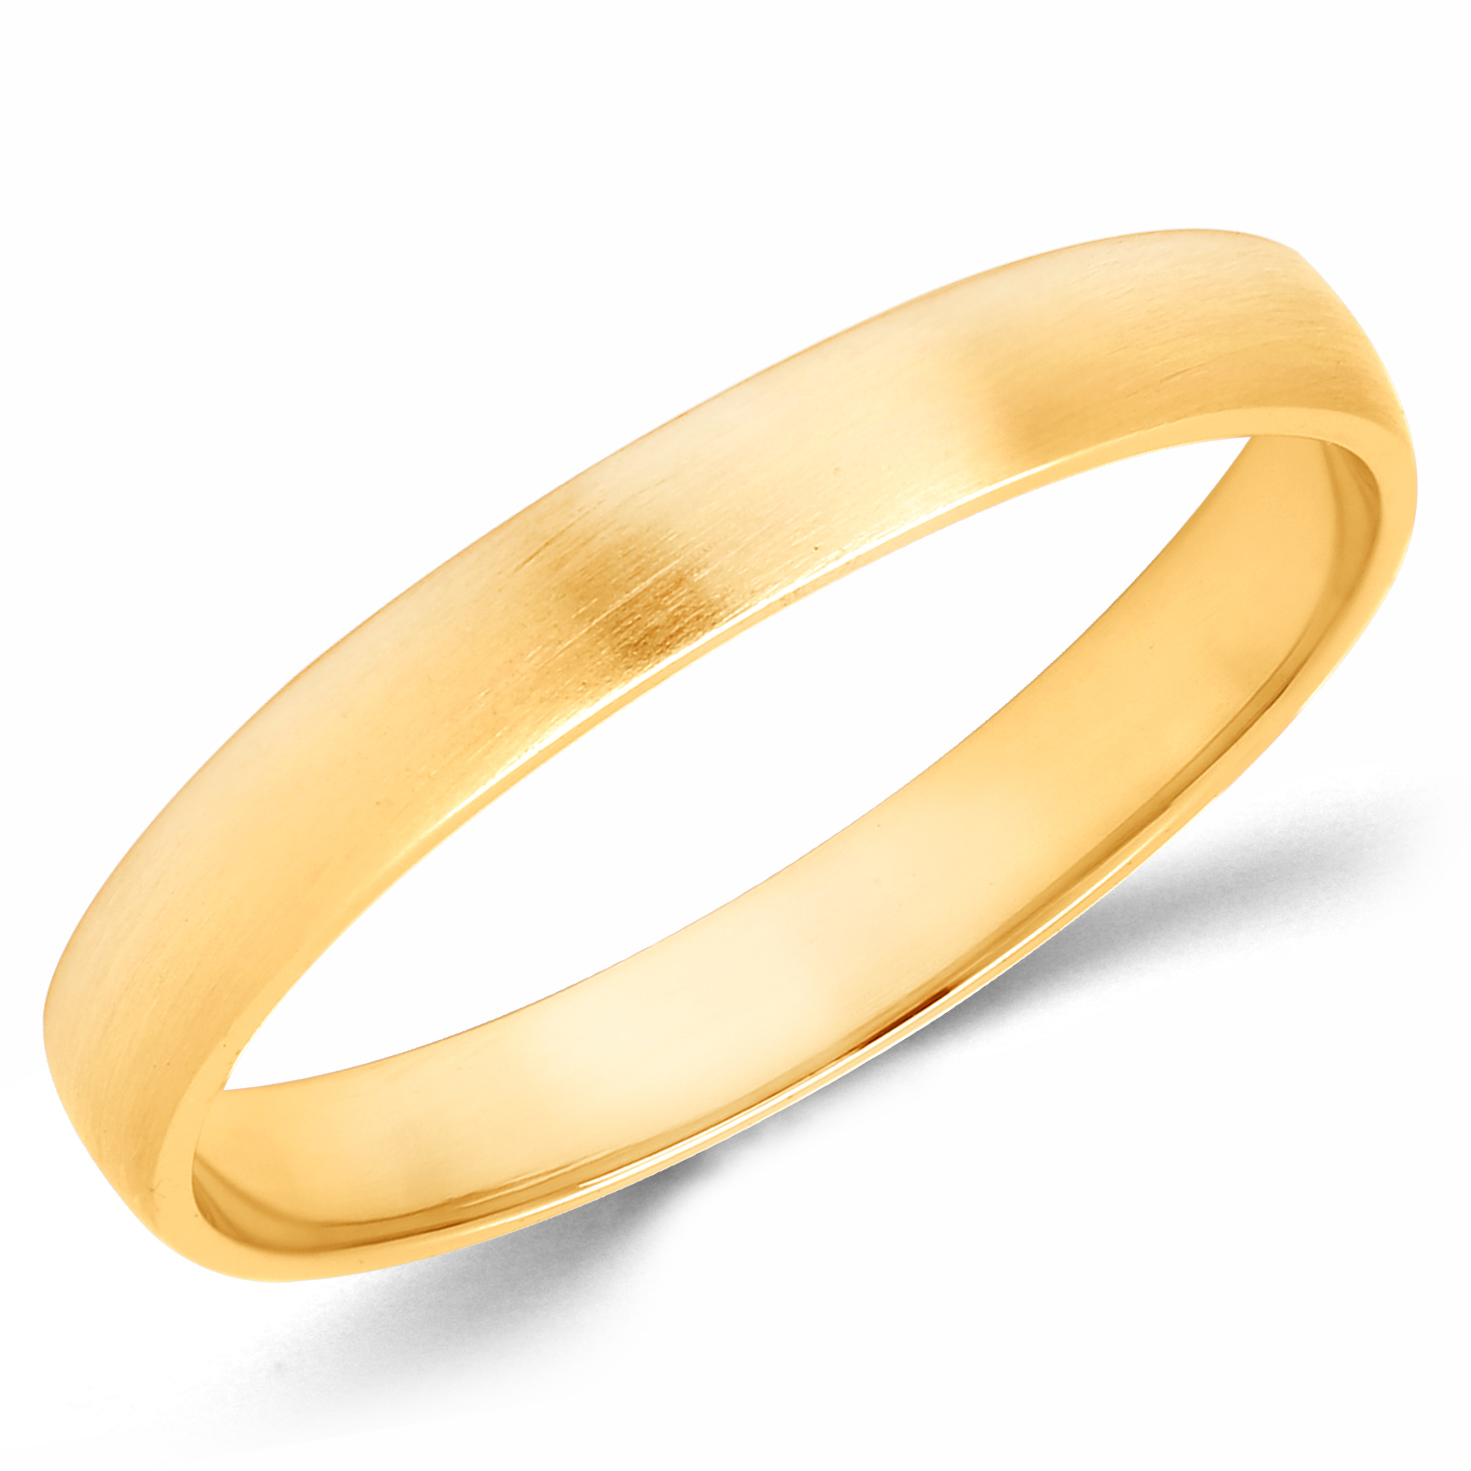 10k Solid Yellow Gold 8mm Size 7 Plain Mens and Womens Wedding Band Ring 8 MM